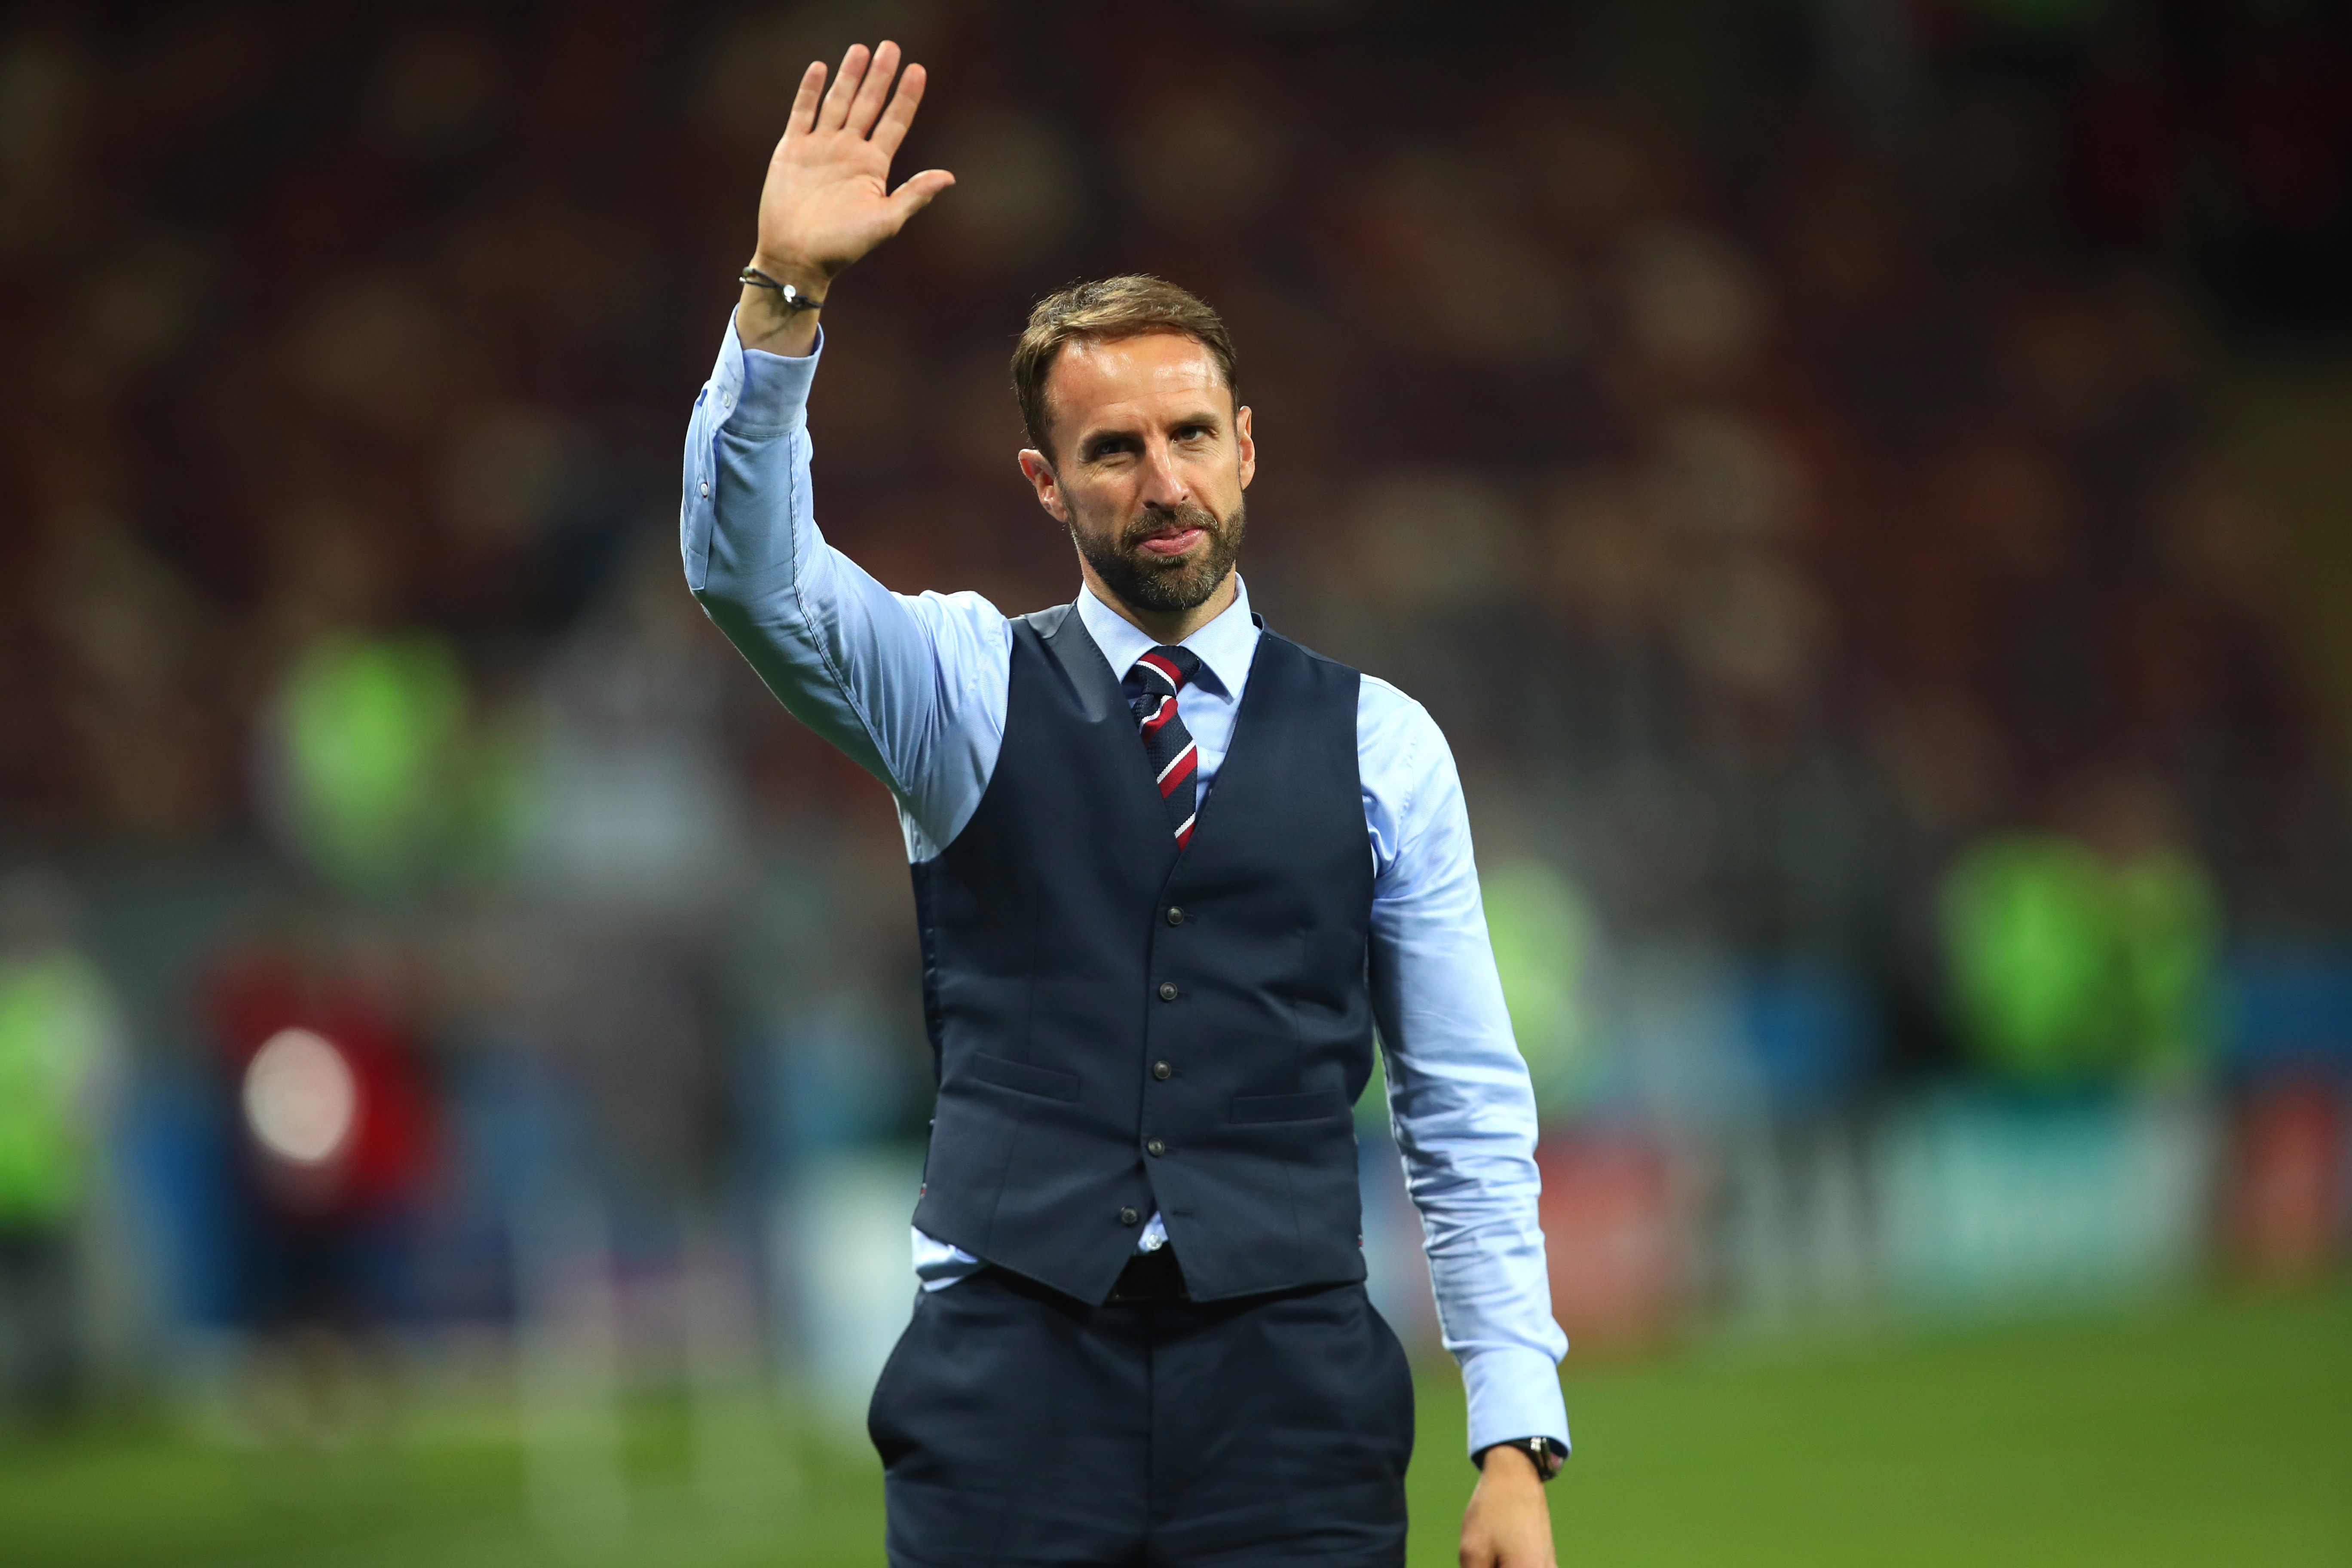 Gareth Southgate head coach / manager of England acknowledges the fans at the end of the 2018 FIFA World Cup Russia Semi Final match between Croatia and England at Luzhniki Stadium on July 11, 2018 in Moscow, Russia.